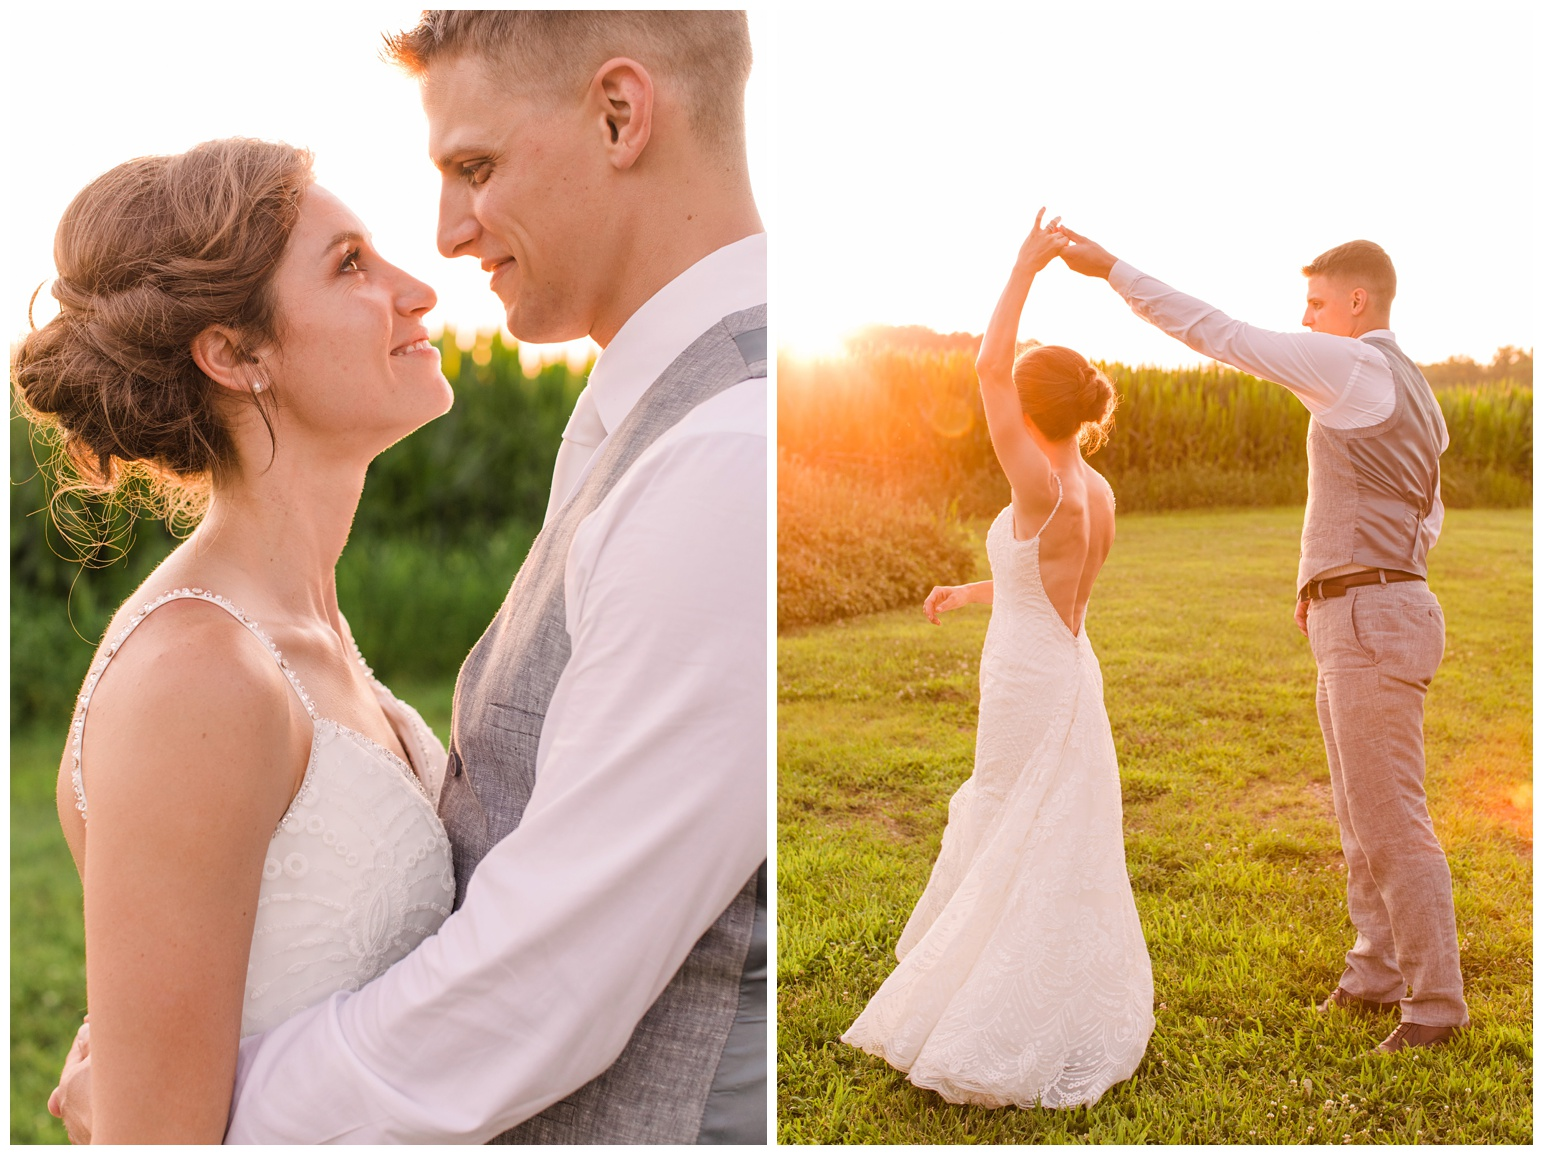 summer wedding at worsell manor - warwick md - now featured on My Eastern Shore Wedding - coastal - sea - nautical - eastern shore - inspired wedding ideas and inspo - photo of bride and groom outdoors at sunset - golden hour - in front of corn field - twirling